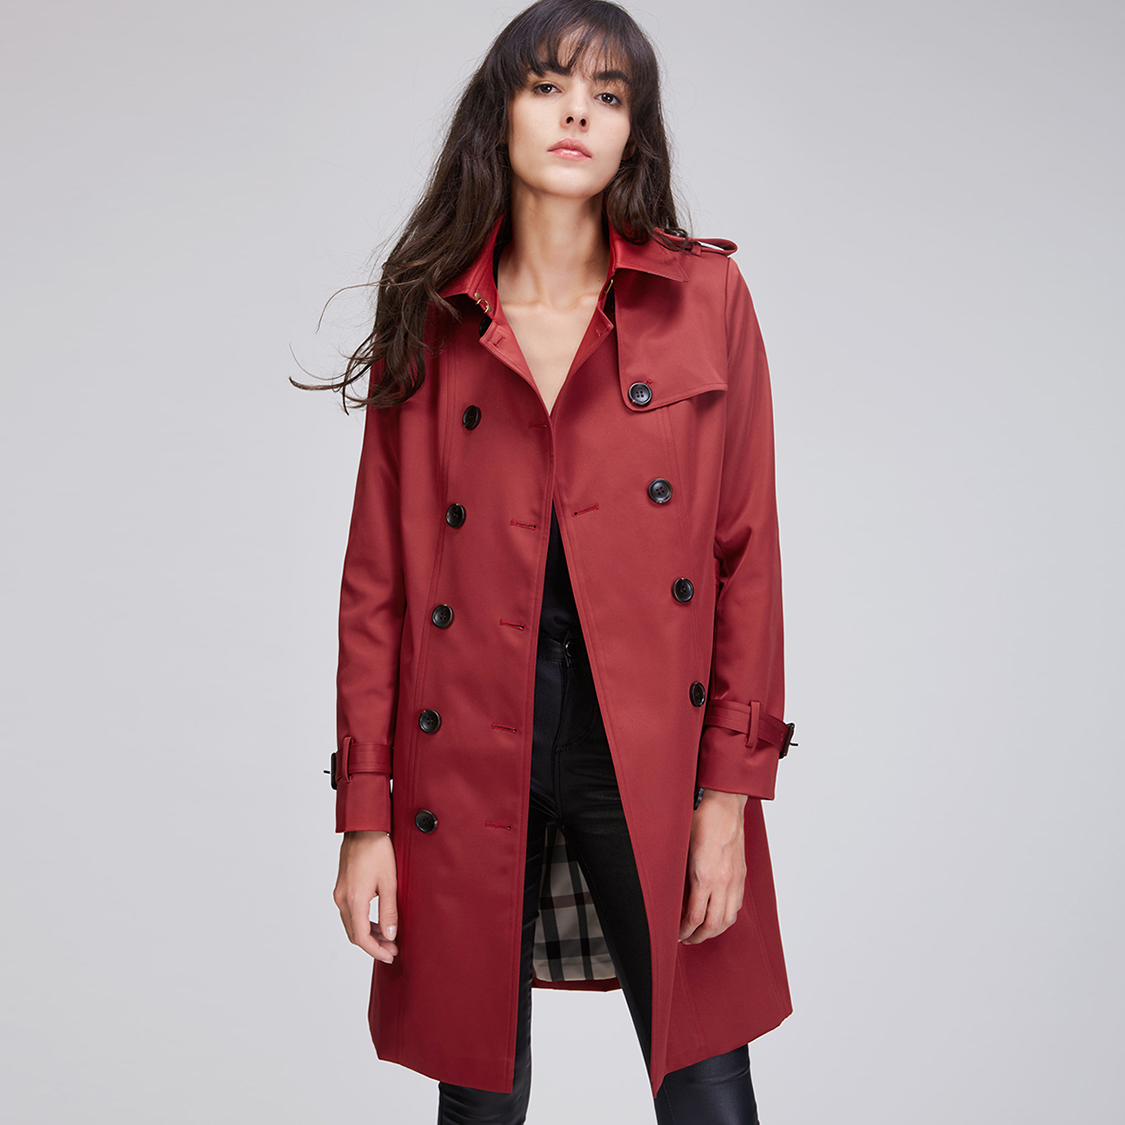 JAZZEVAR 2018 Autumn New High Fashion Brand Woman Classic Double Breasted Trench Coat Waterproof Raincoat Business Outerwear 1